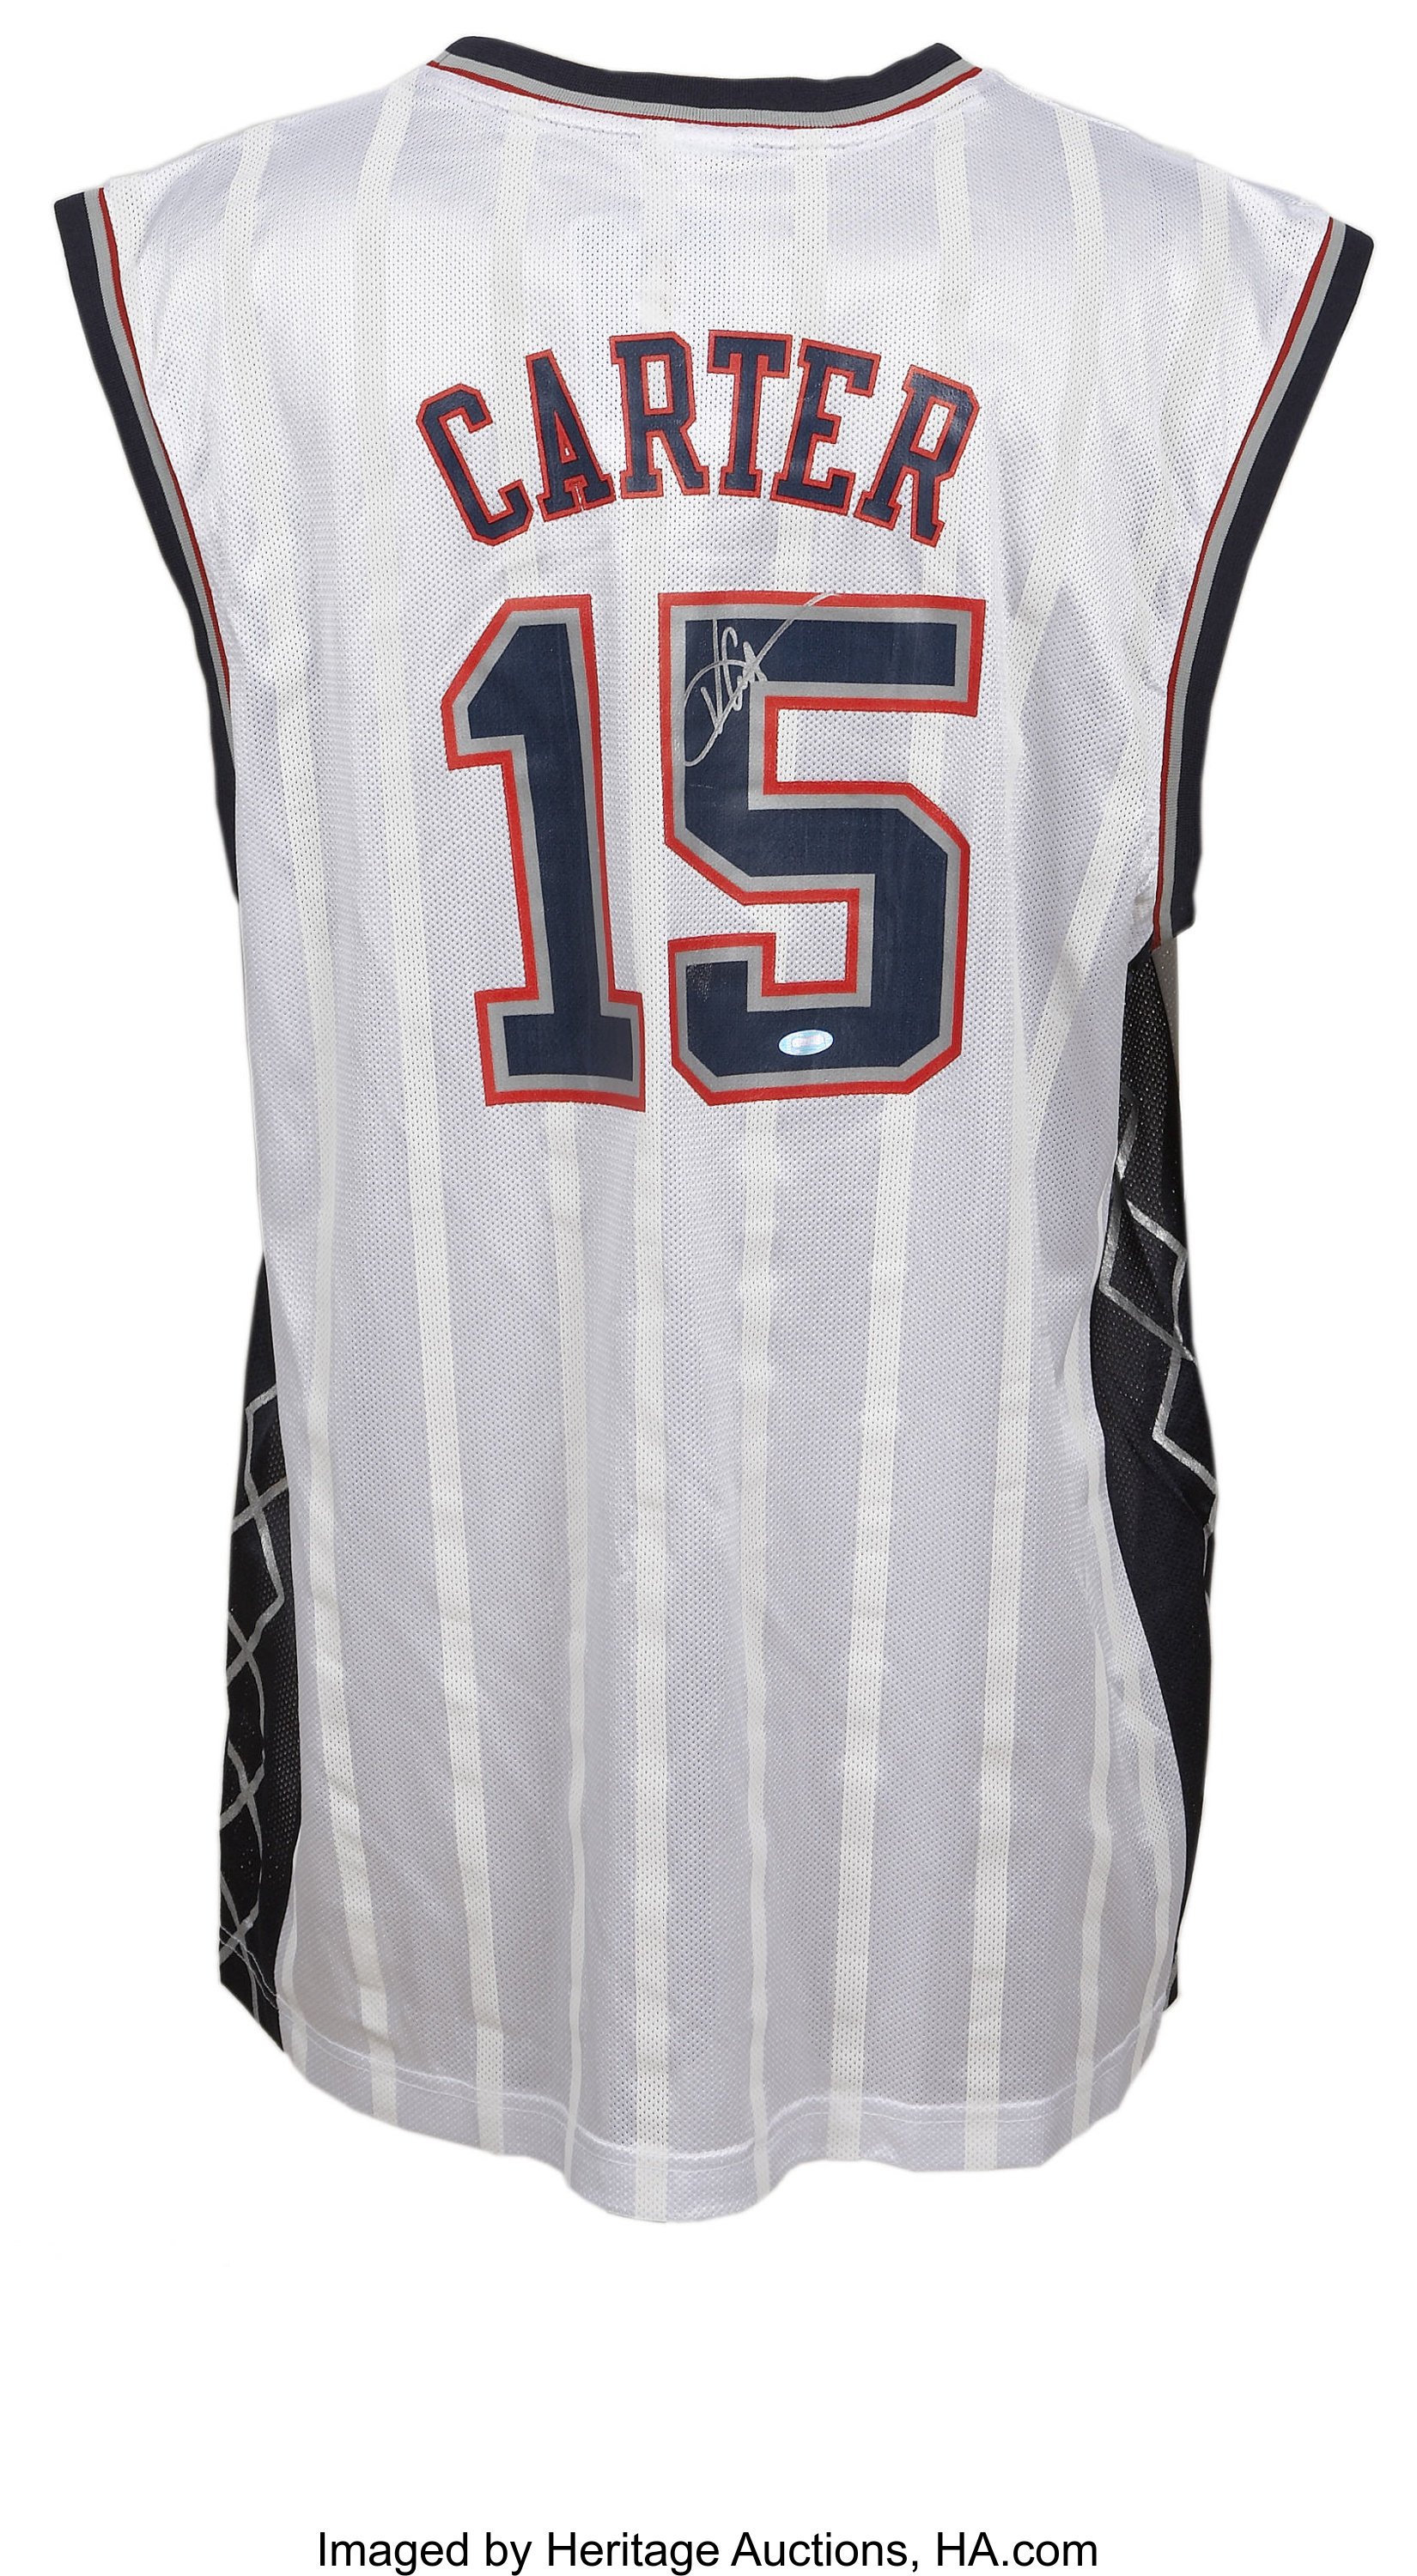 new arrivals 56cce 7dc14 Vince Carter Signed Jersey. Ridiculous athlete Vince Carter ...